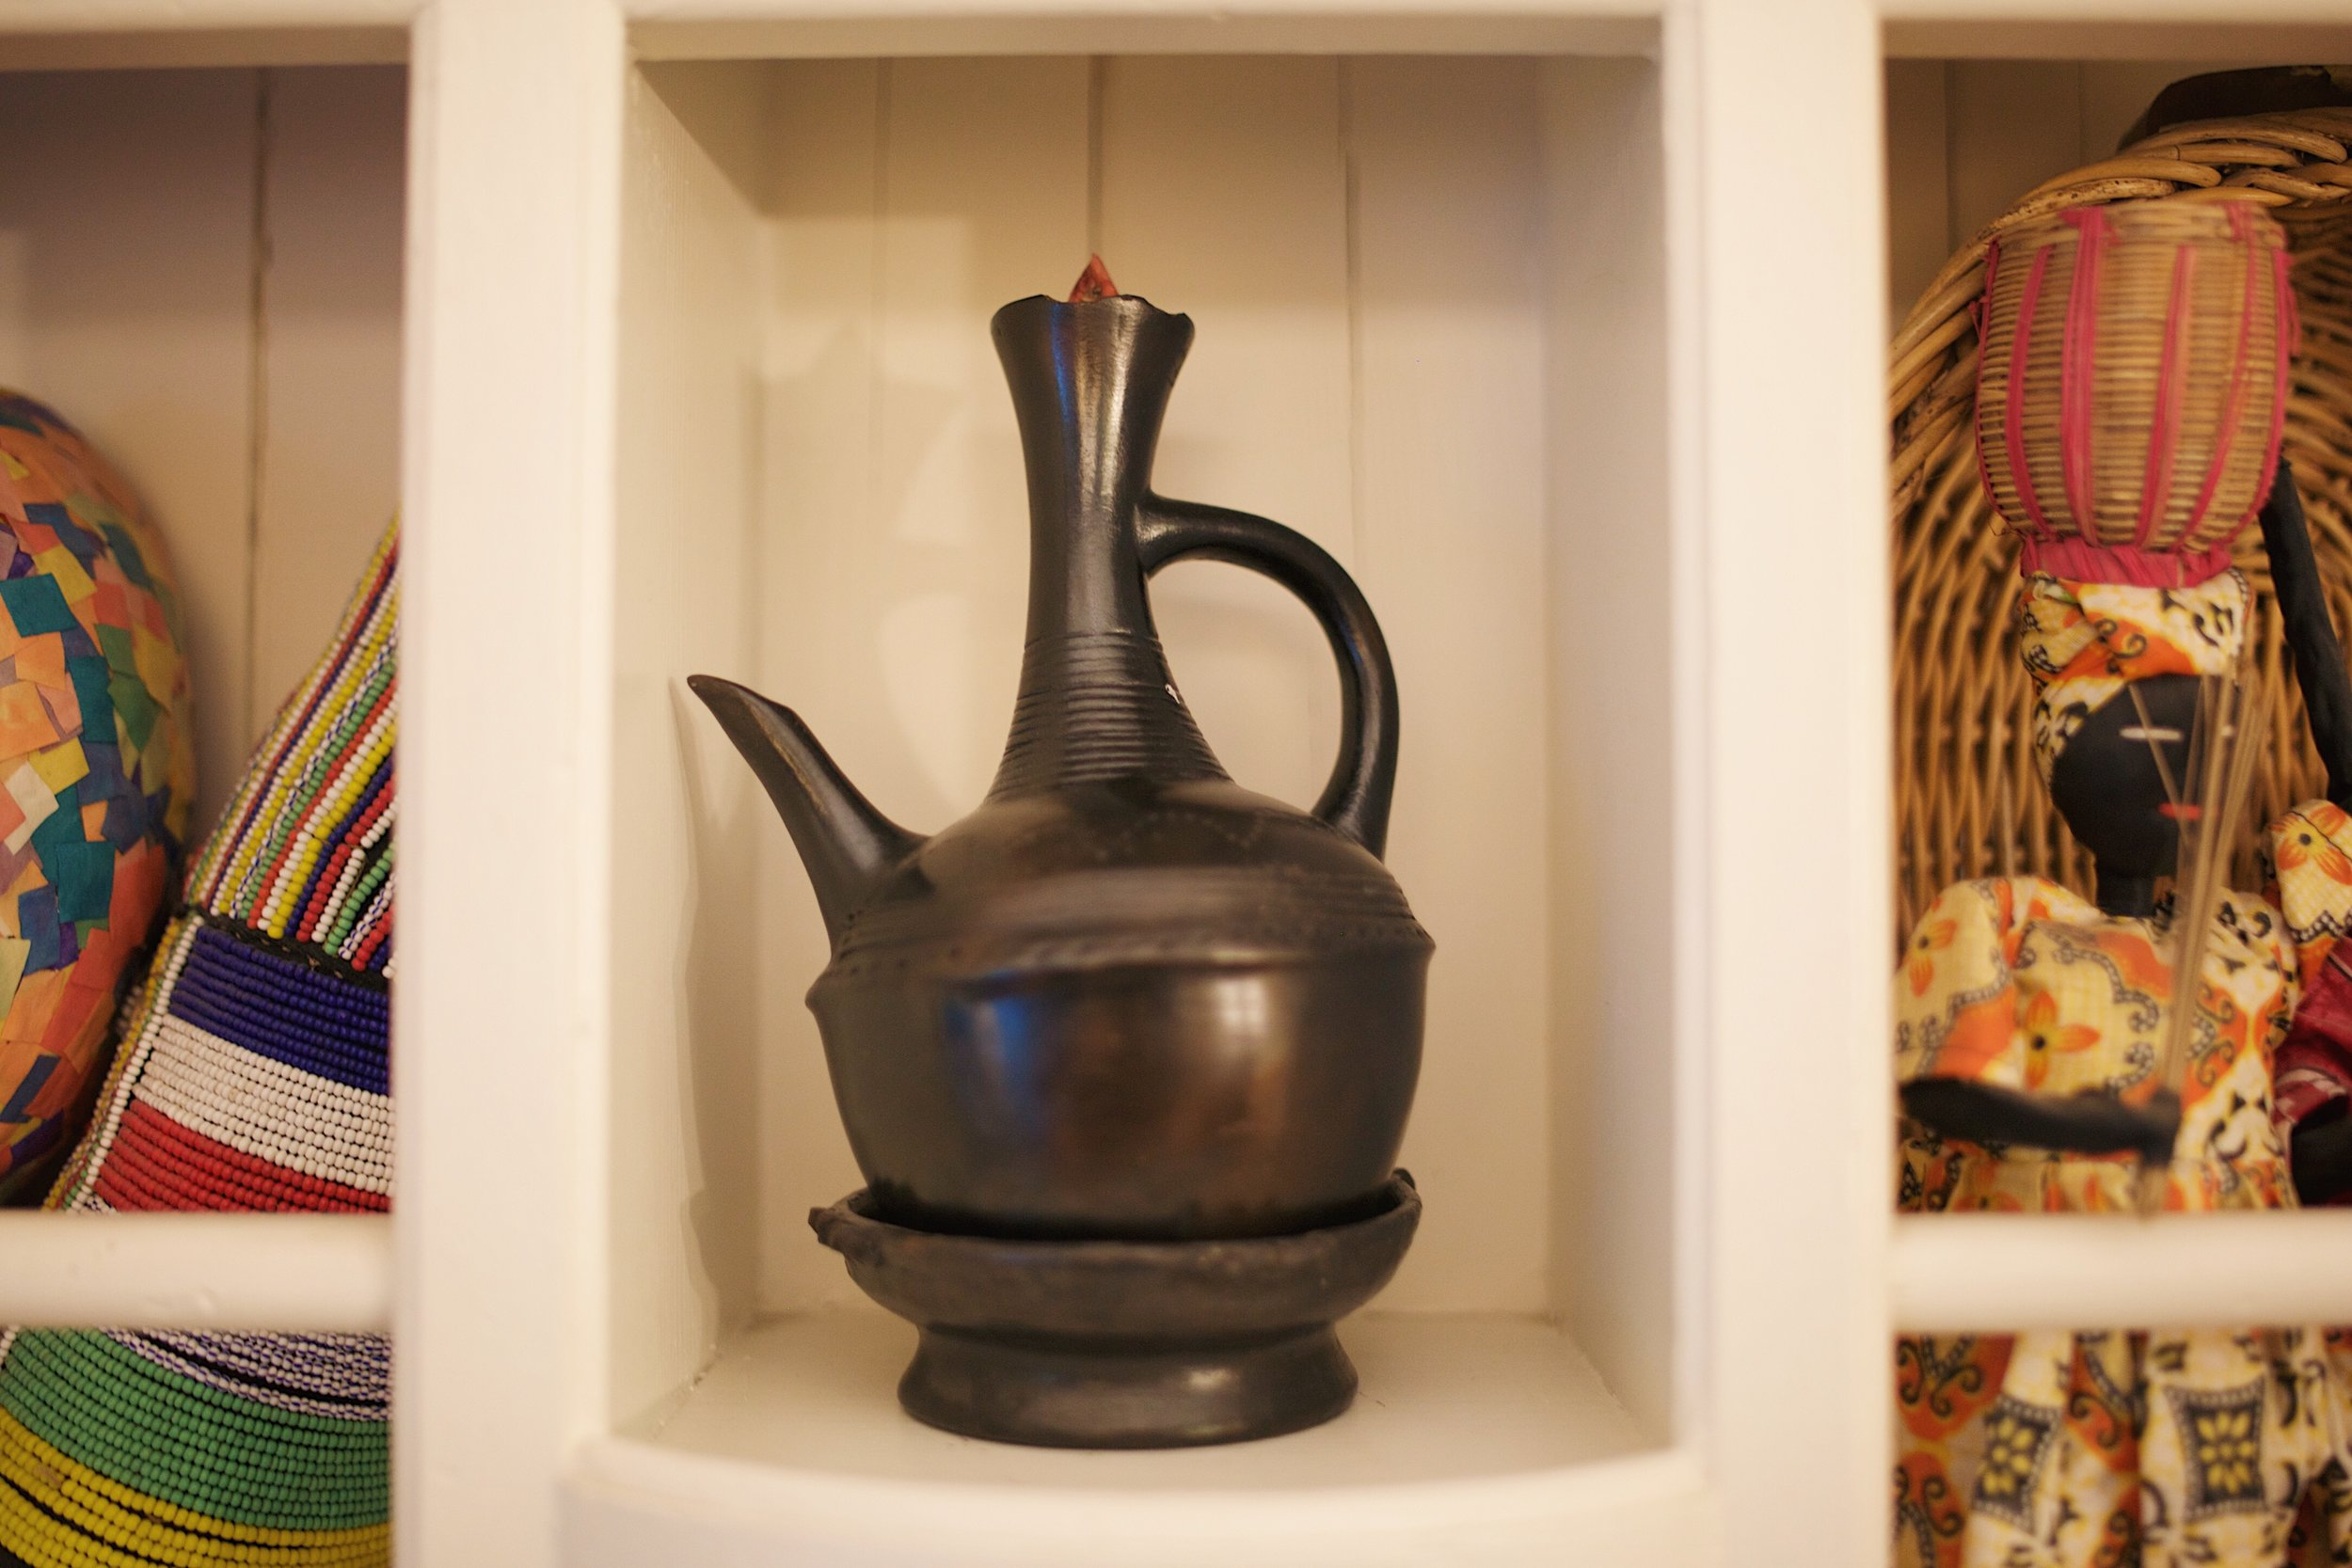 A coffee pot Ethiopians drink out of either at every meal, or by itself. Tesfanesh loves the smell of coffee. Where she is from in Ethiopia is known for being the largest producer of coffee in Ethiopia.